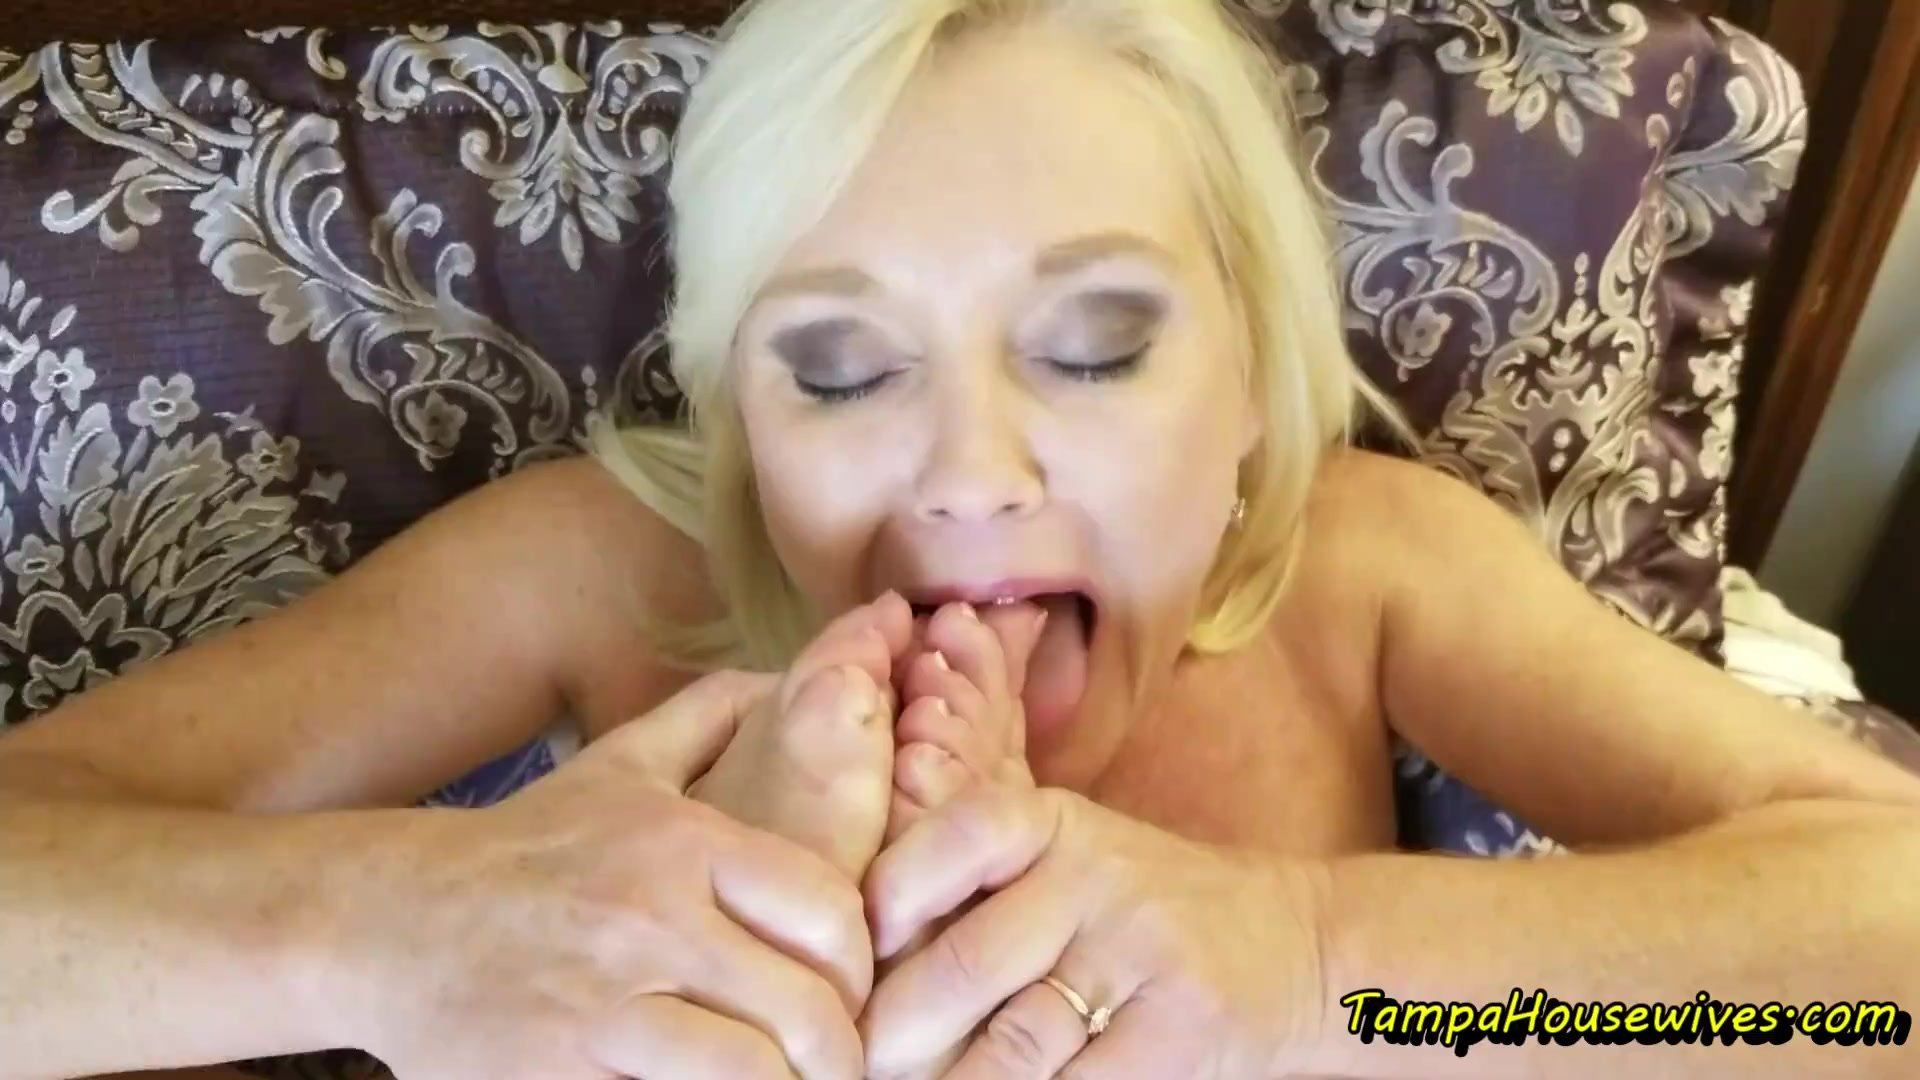 Some Horny Housewives Know How to Enjoy Themselves